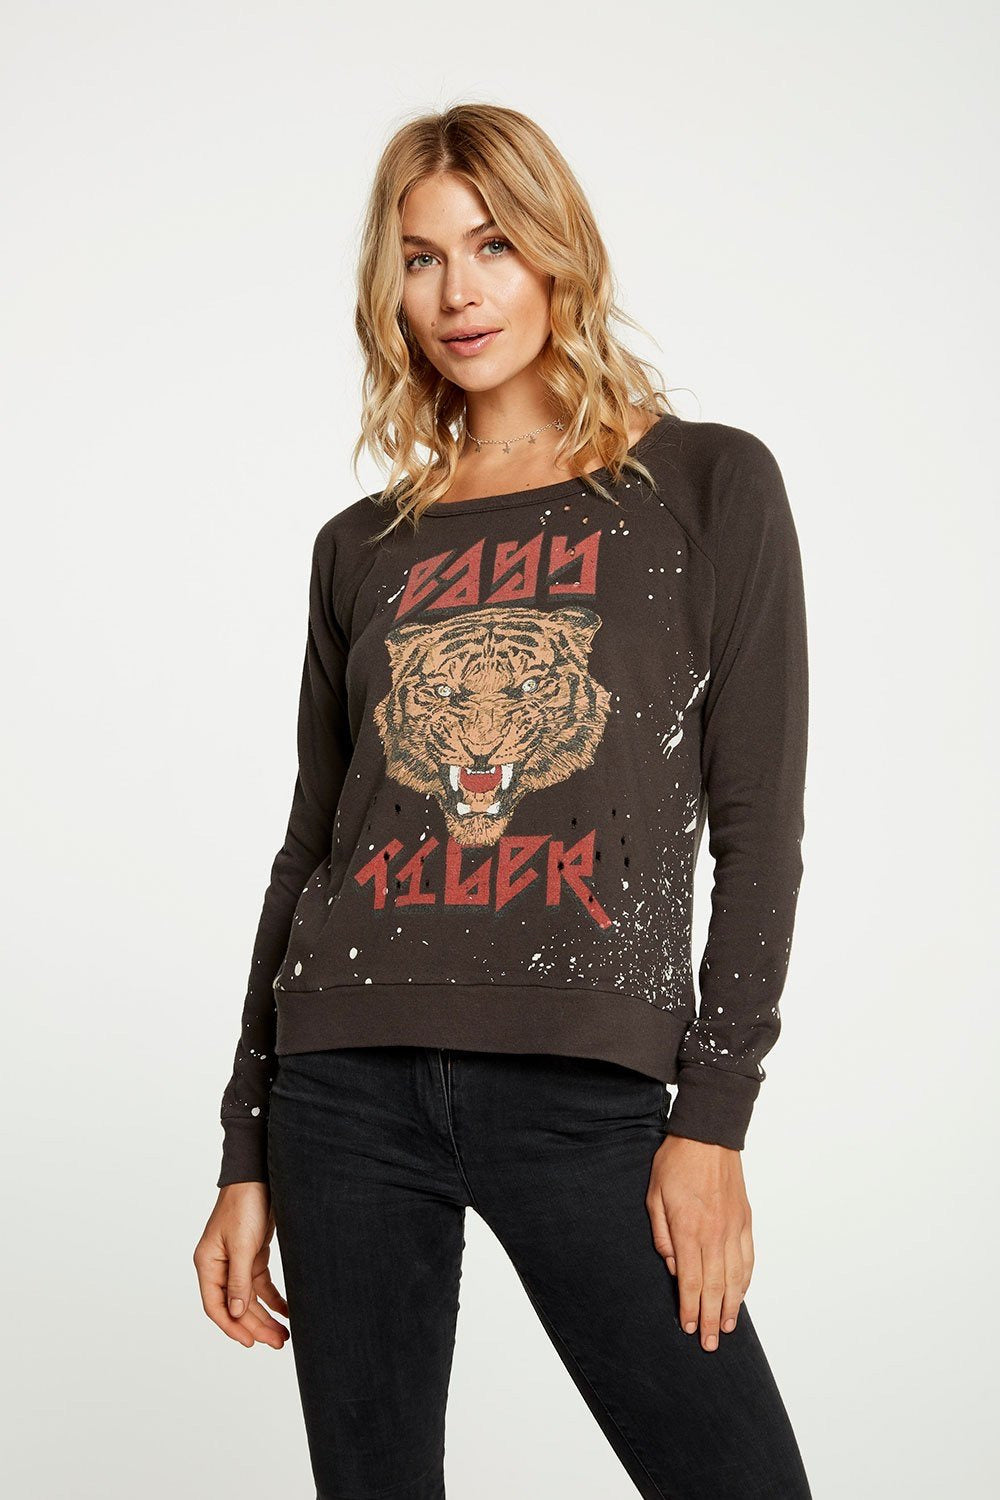 Easy Tiger Long Sleeve Tee